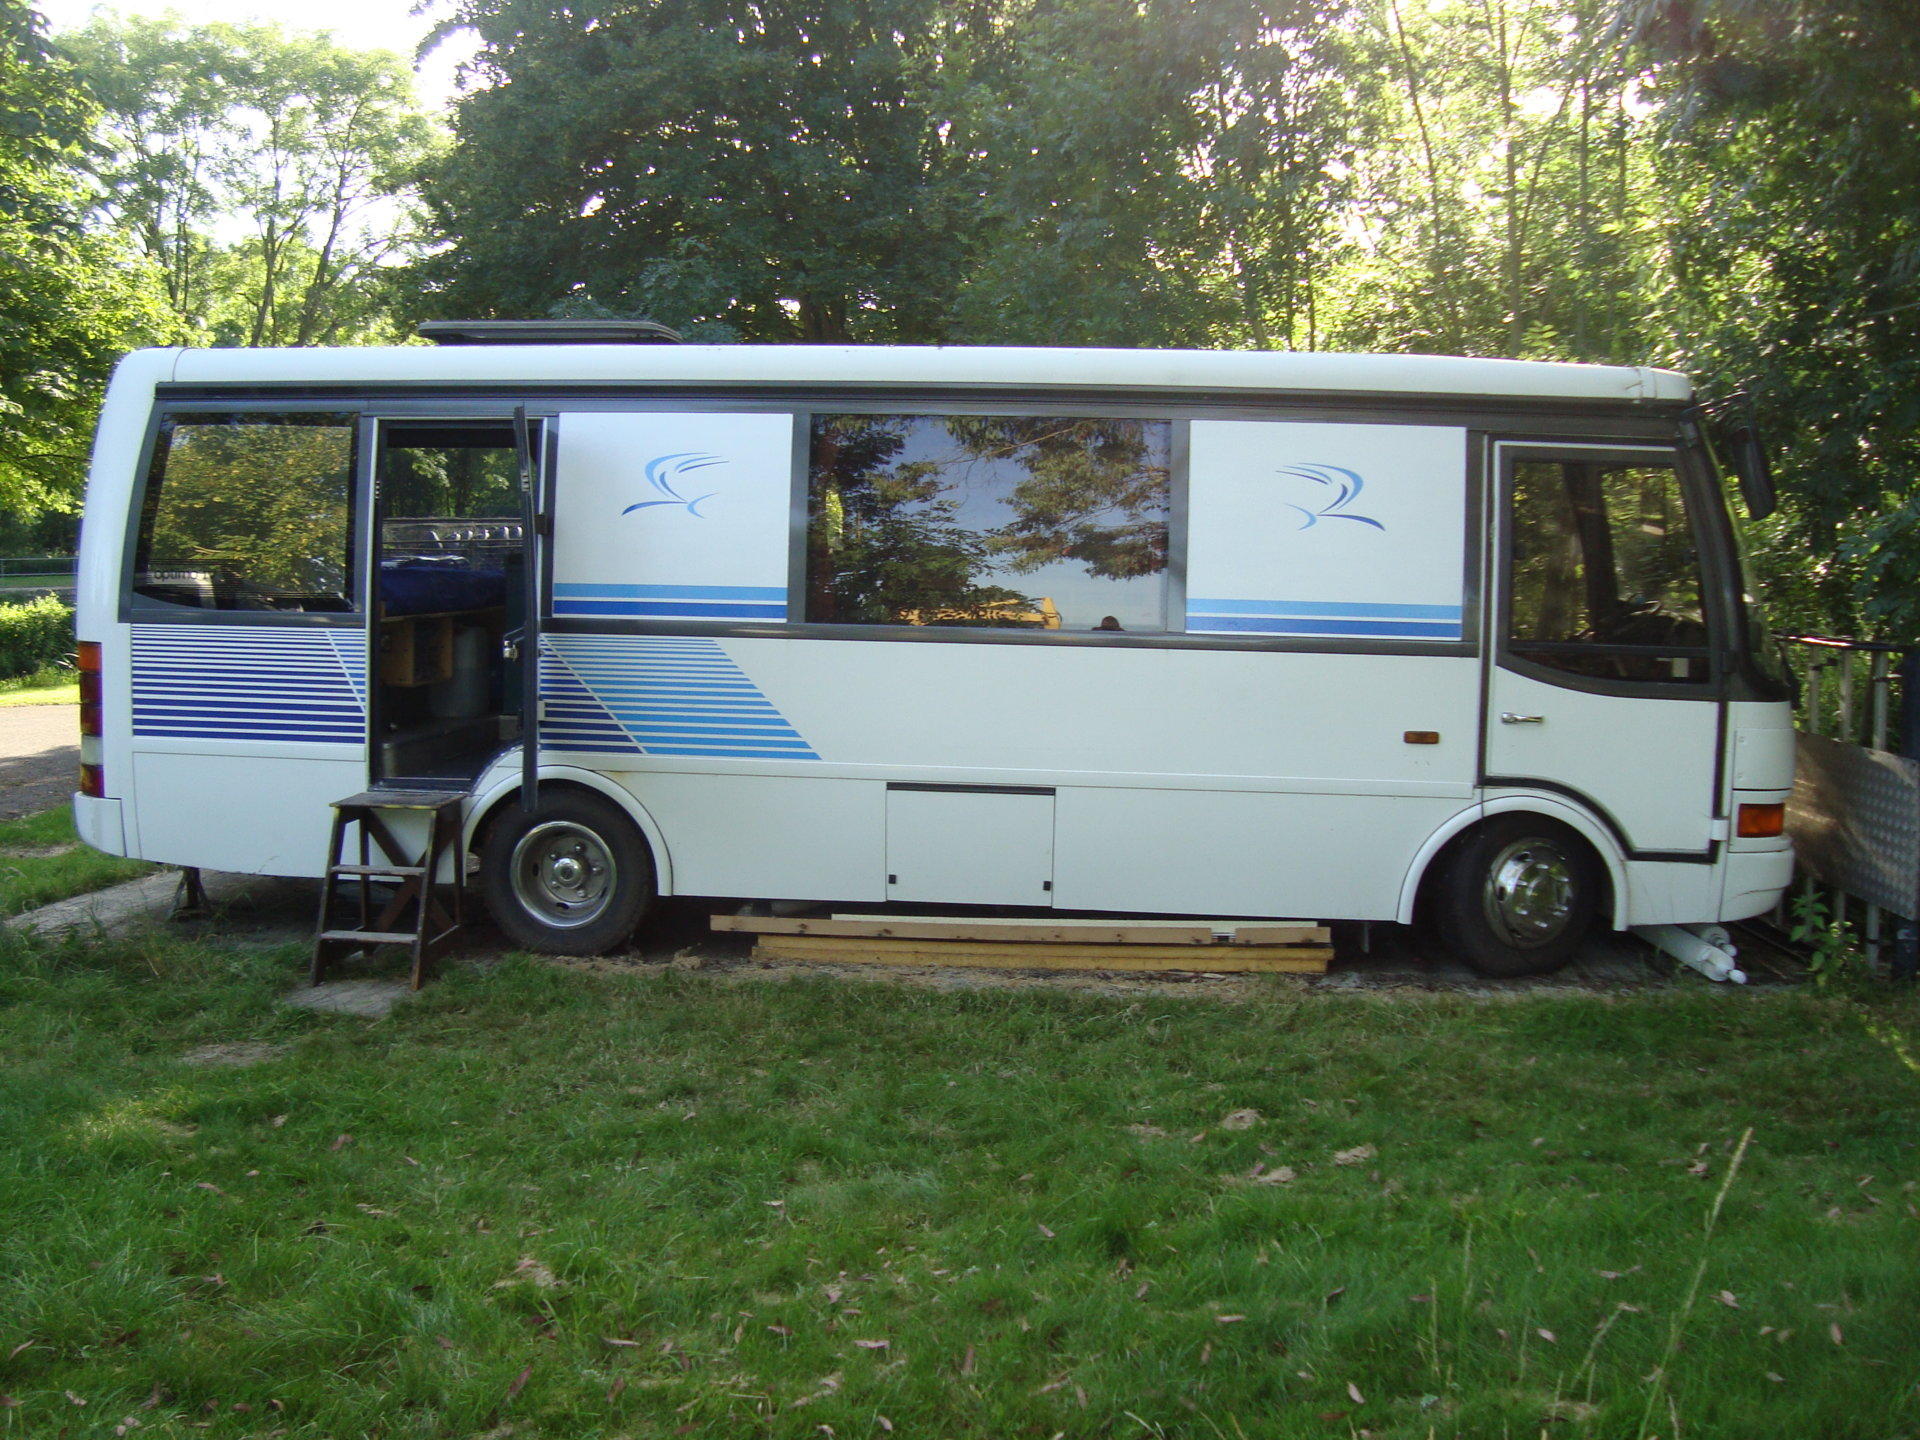 1998 Toyota Coaster Bb50 Electrical Service Manual Needed